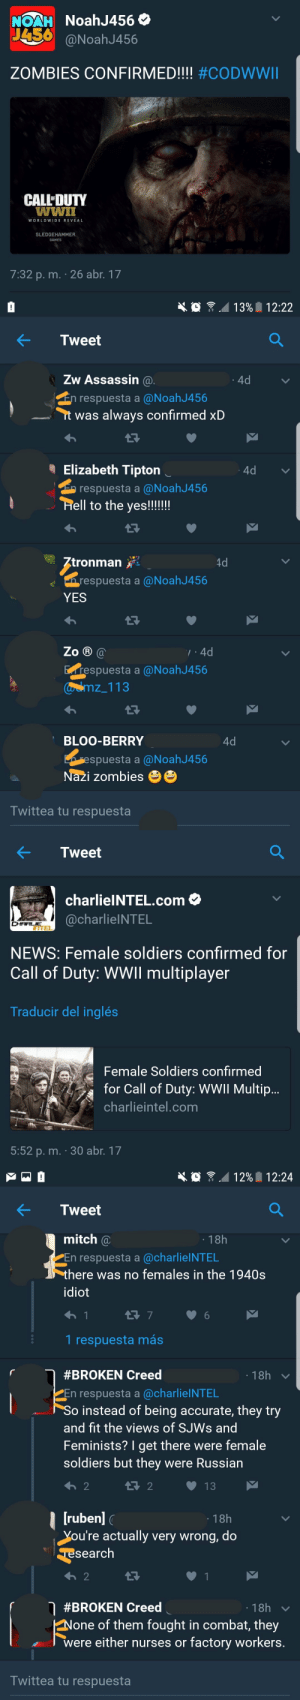 """feniczoroark:  mwg-7:  eddierichtofens:   spainonymous: Call of Male chouvinist Yeah, the most unrealistic thing about Call of Duty is female soldiers.   women were invented in 1950    """"None of them fought in combat""""Lets see where thats wrong. I'll start. 588th Night Bomber regiment, """"The night Witches"""", Russia @randomnightlord    Many Russian Sniper were womenAlso French Resistance: NoahJ456 O  NOAH  J456  @NoahJ456  ZOMBIES CONFIRMED!!!! #CODWWII  CALL'DUTY  wwiI  WORLDWIDE REVEAL  SLEDGEHAMMER  GAMES  7:32 p. m. · 26 abr. 17   13% 12:22  Tweet  Zw Assassin @.  4d  En respuesta a @NoahJ456  it was always confirmed xD  I Elizabeth Tipton  4d  E respuesta a @NoahJ456  Hell to the yes!!!!!!  Ztronman  4d  n respuesta a @NoahJ456  YES  Zo ® @  7:4d  Erespuesta a @NoahJ456  Caamz_113  BLOO-BERRY  4d  respuesta a @NoahJ456  Nazi zombies  Twittea tu respuesta   Tweet  charlielNTEL.com O  @charlielNTEL  CHARLIE  ITTEL  NEWS: Female soldiers confirmed for  Call of Duty: WWII multiplayer  Traducir del inglés  Female Soldiers confirmed  for Call of Duty: WWII Multip..  charlieintel.com  5:52 p. m. · 30 abr. 17   12% I 12:24  Tweet  mitch @  · 18h  PEn respuesta a @charlielNTEL  there was no females in the 1940s  idiot  1 respuesta más  · 18h  #BROKEN Creed  En respuesta a @charlielNTEL  So instead of being accurate, they try  and fit the views of SJWS and  Feminists? I get there were female  soldiers but they were Russian  t7 2  13  